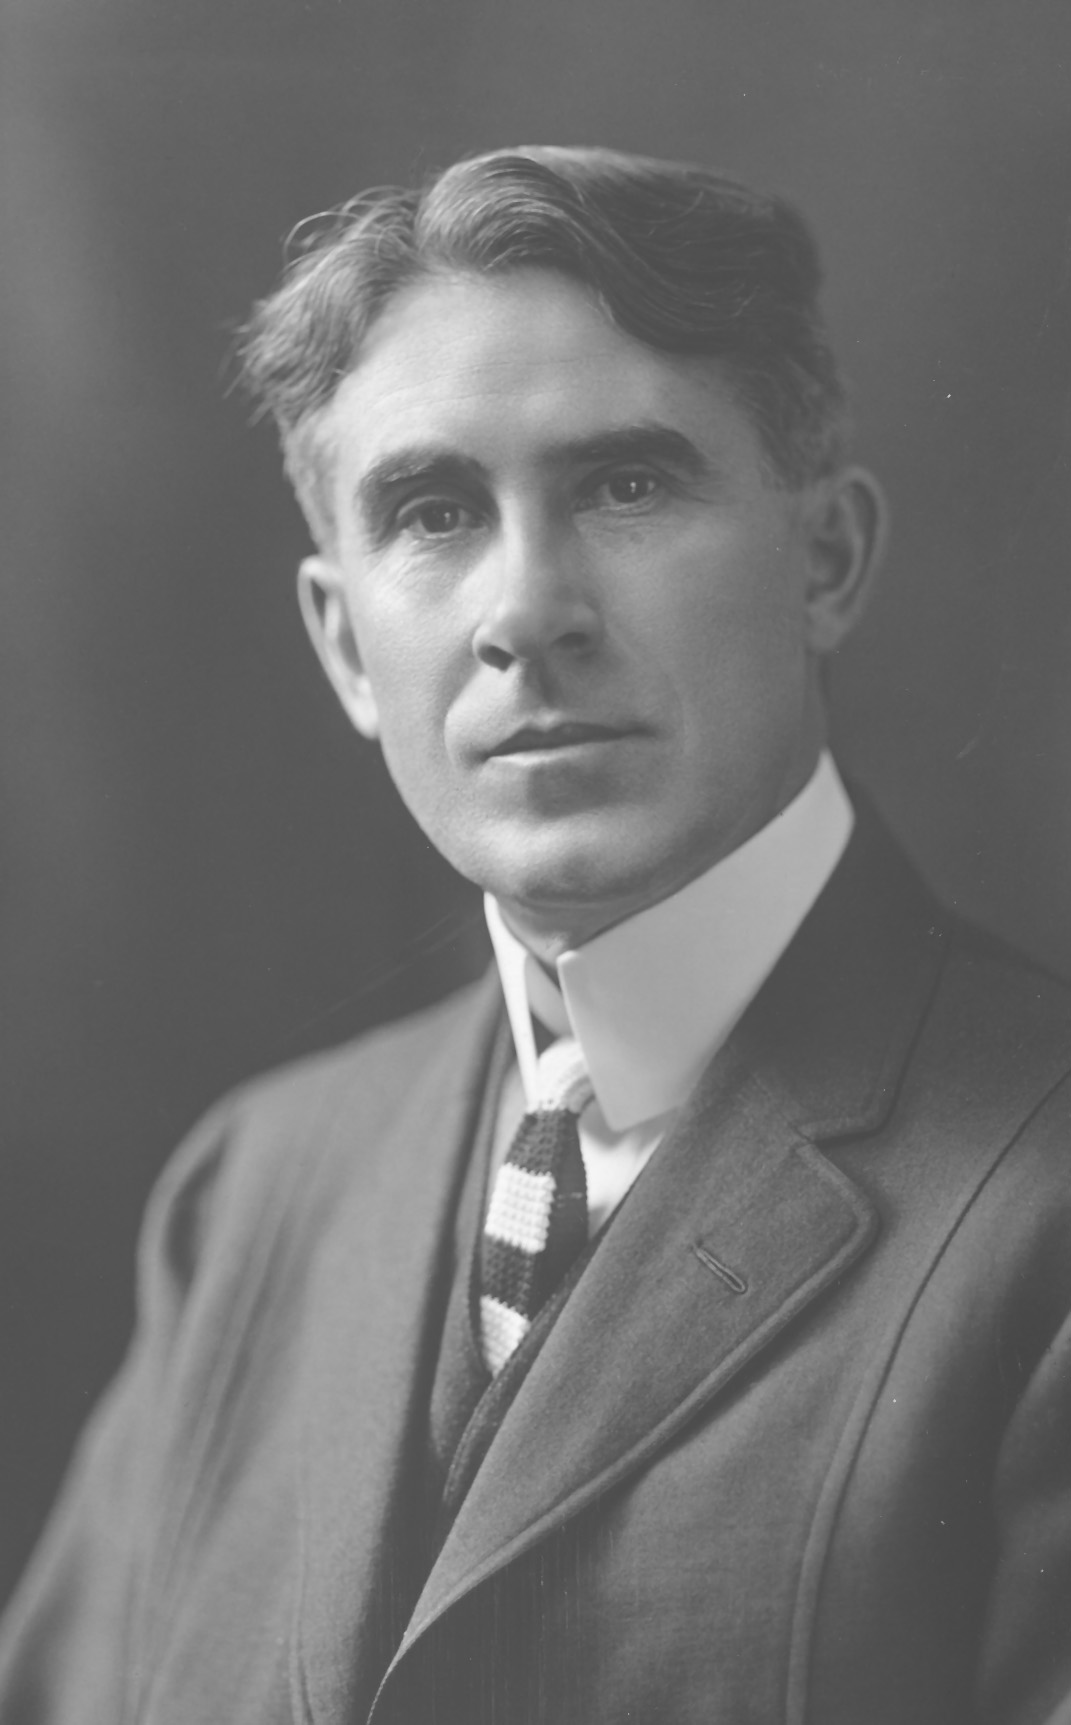 Born and raised in Ohio, Zane Grey moved to Lackawaxen, PA, after marrying in 1905. There he wrote his first successful Western, The Heritage of the Desert, (1910) and Riders of the Purple Sage (1912), his most popular book and one of the best-selling Westerns of all time.